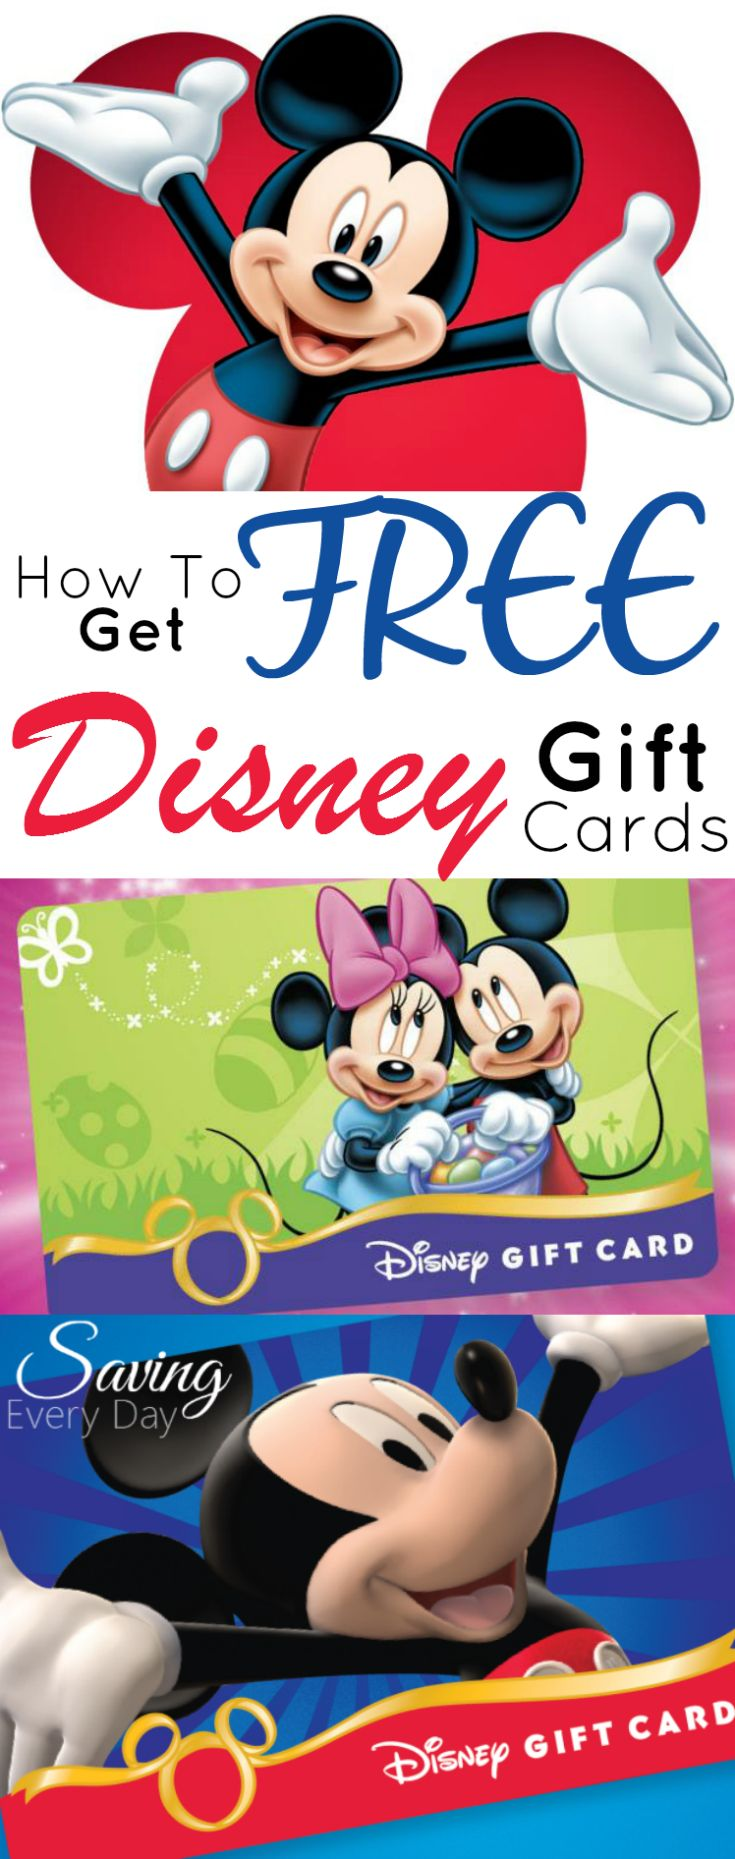 I've been doing this for over 8 years and average $500 - $800 in free cash for my Disney vacation fund :)